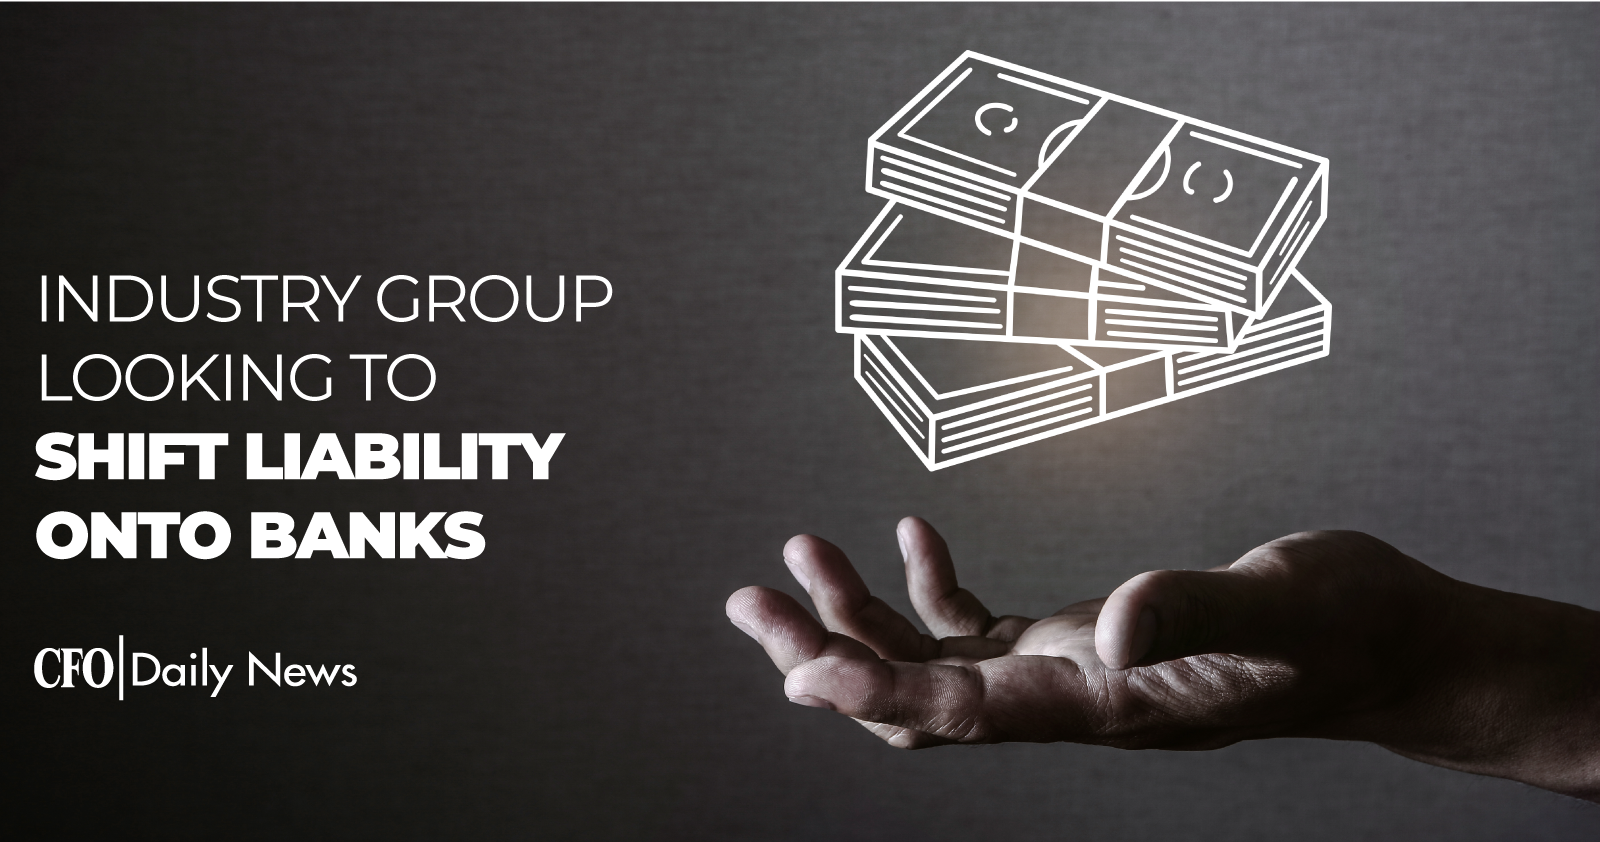 industry group looking to shift liability onto banks